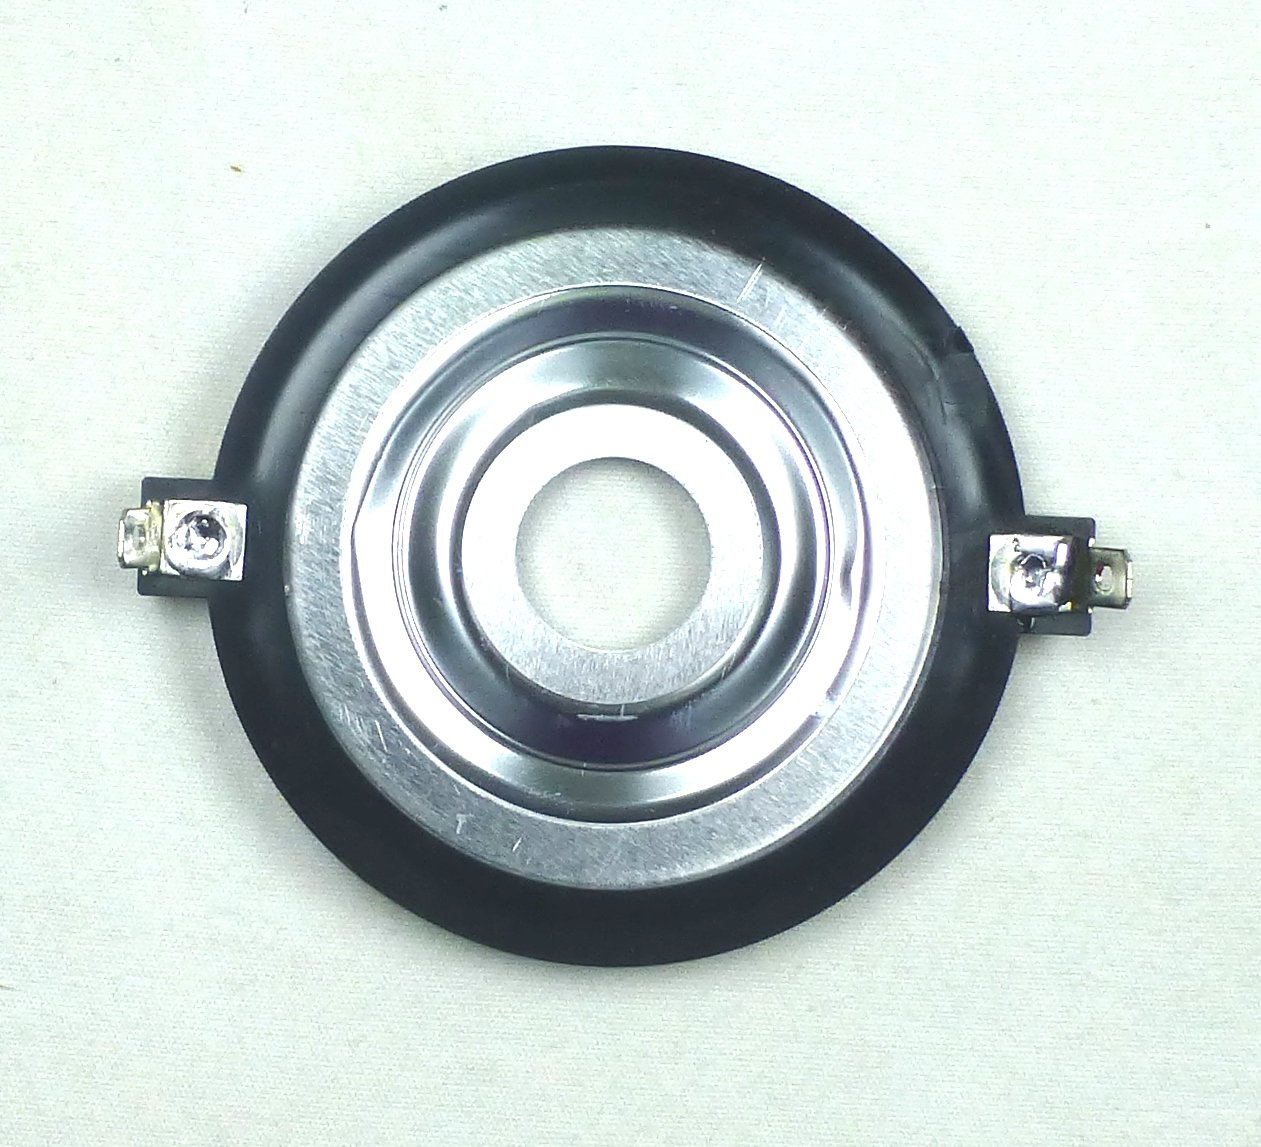 Beyma Replacement Diaphragm for CP21, CP22 and CP25 Compression Tweeters, 8 ohm